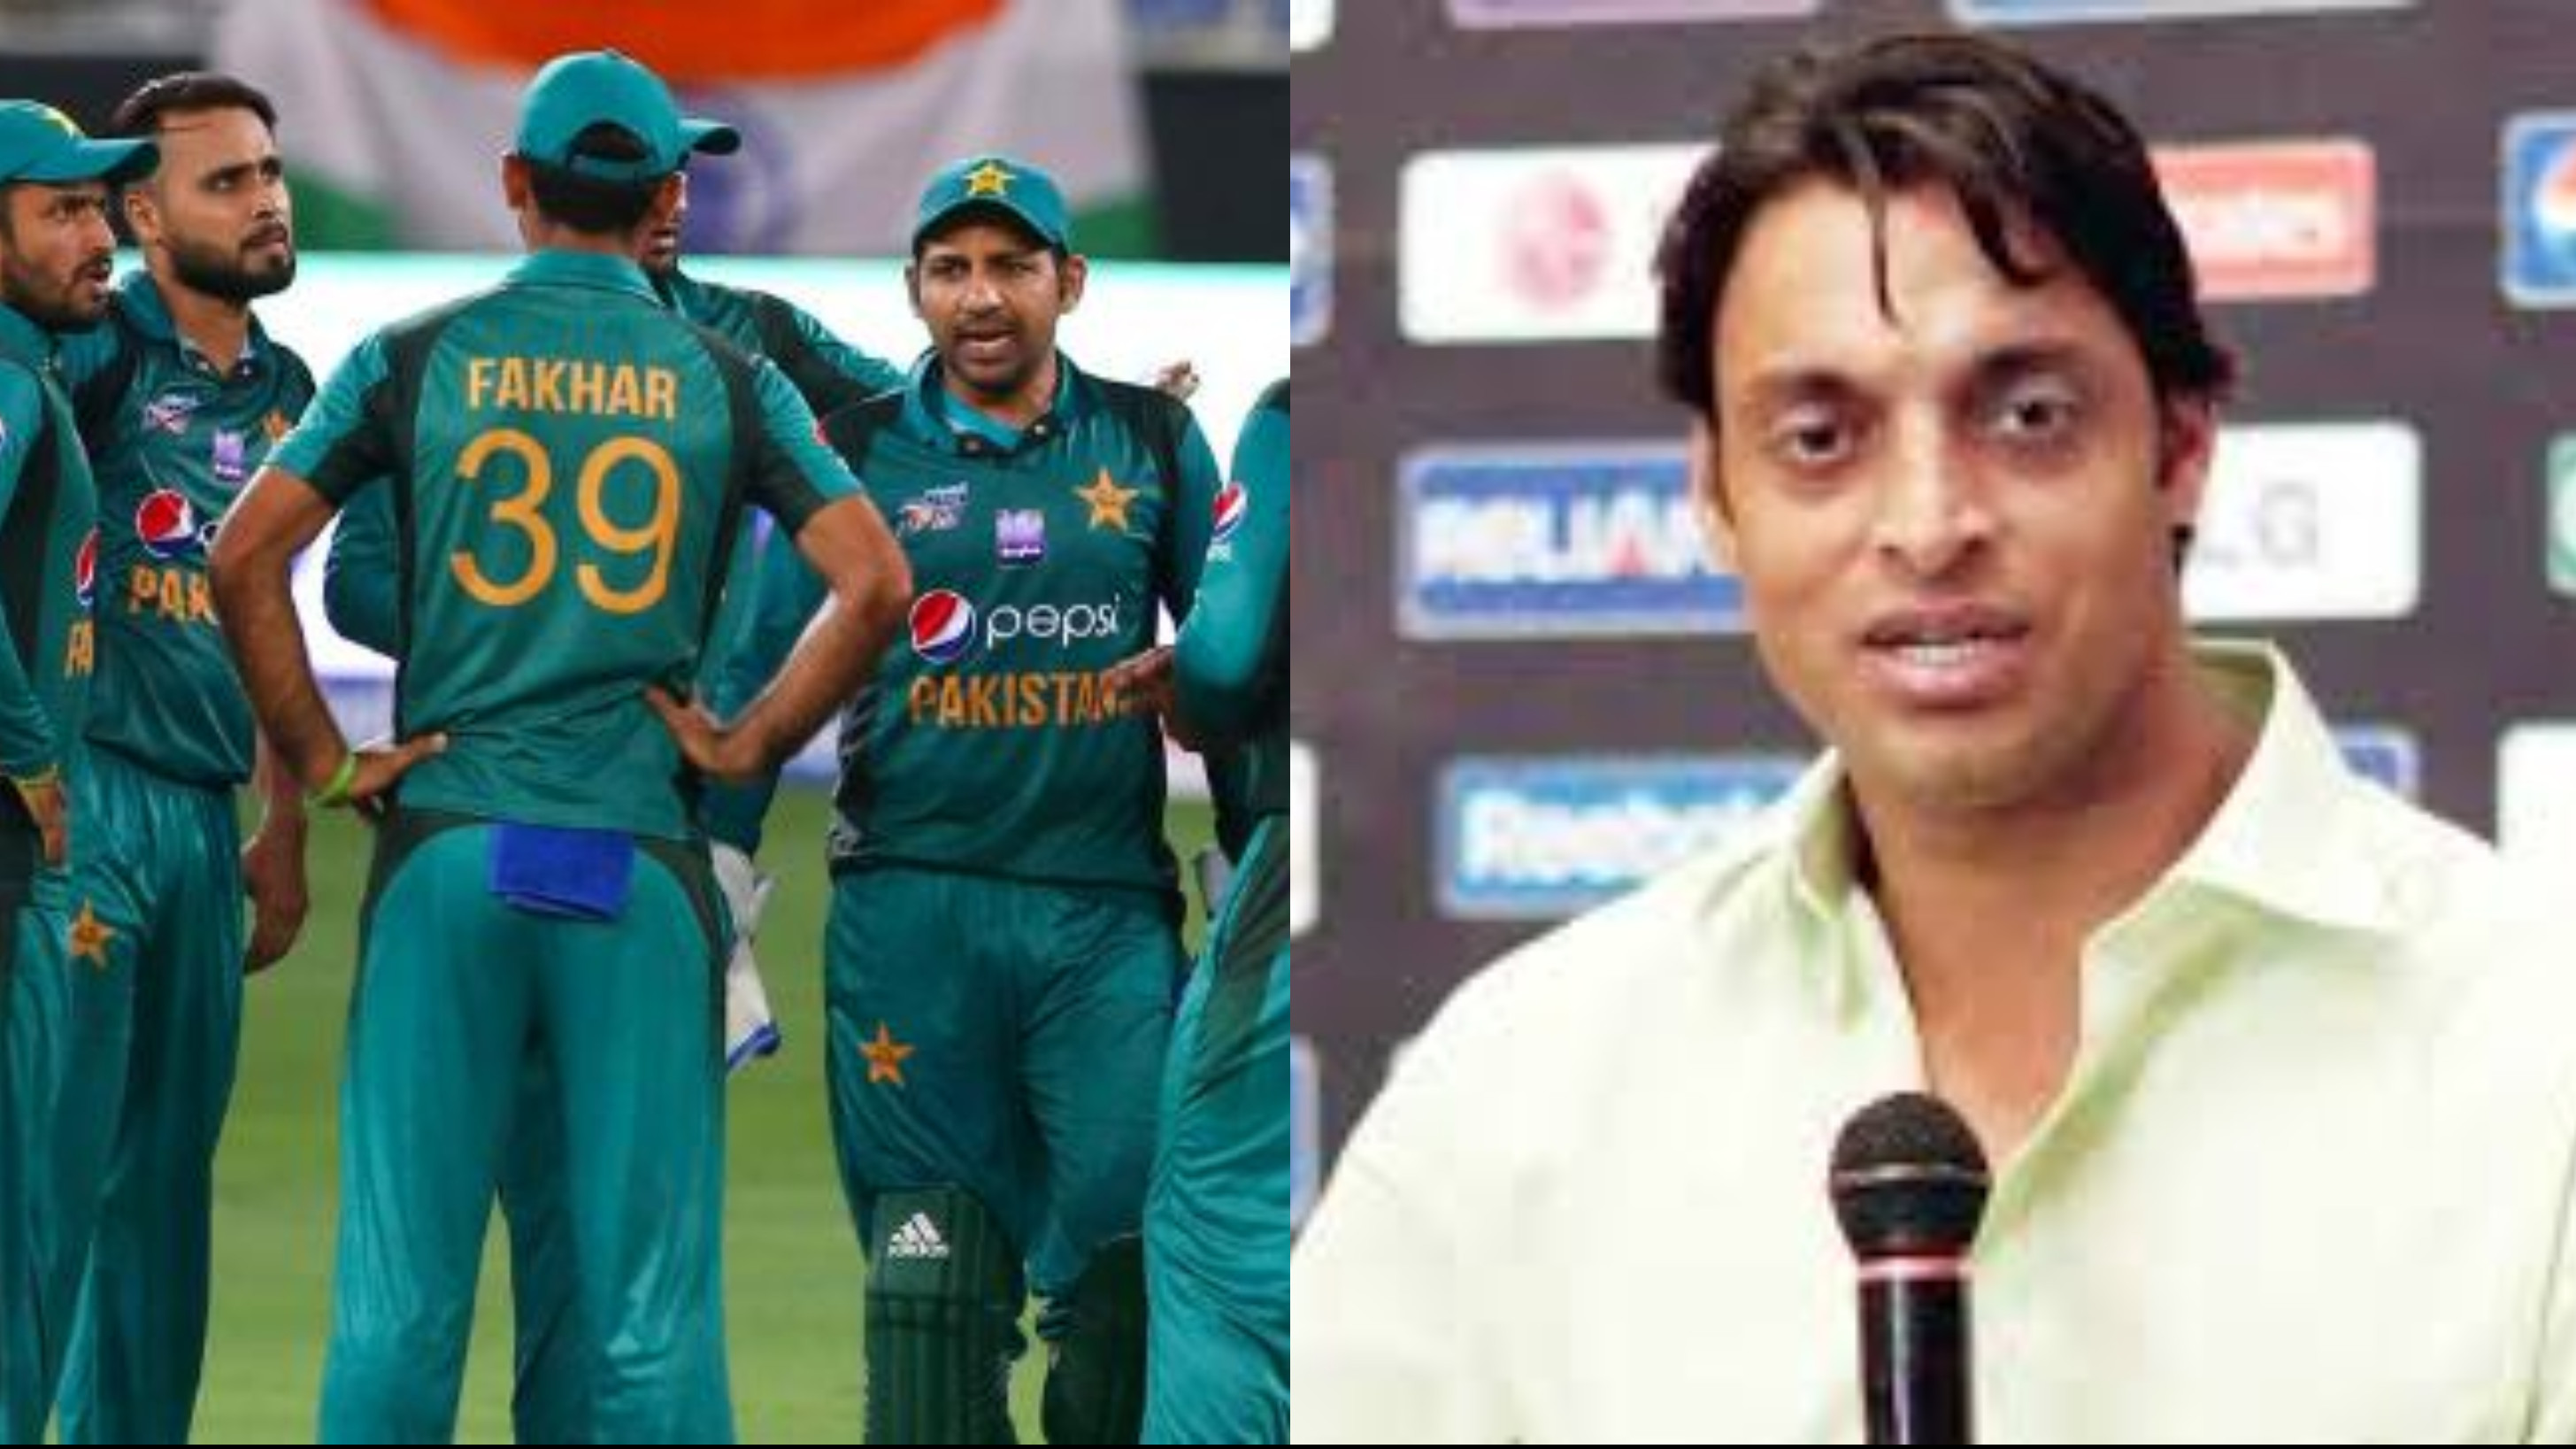 Asia Cup 2018: Pakistan will make a strong comeback in the tournament, says Shoaib Akhtar